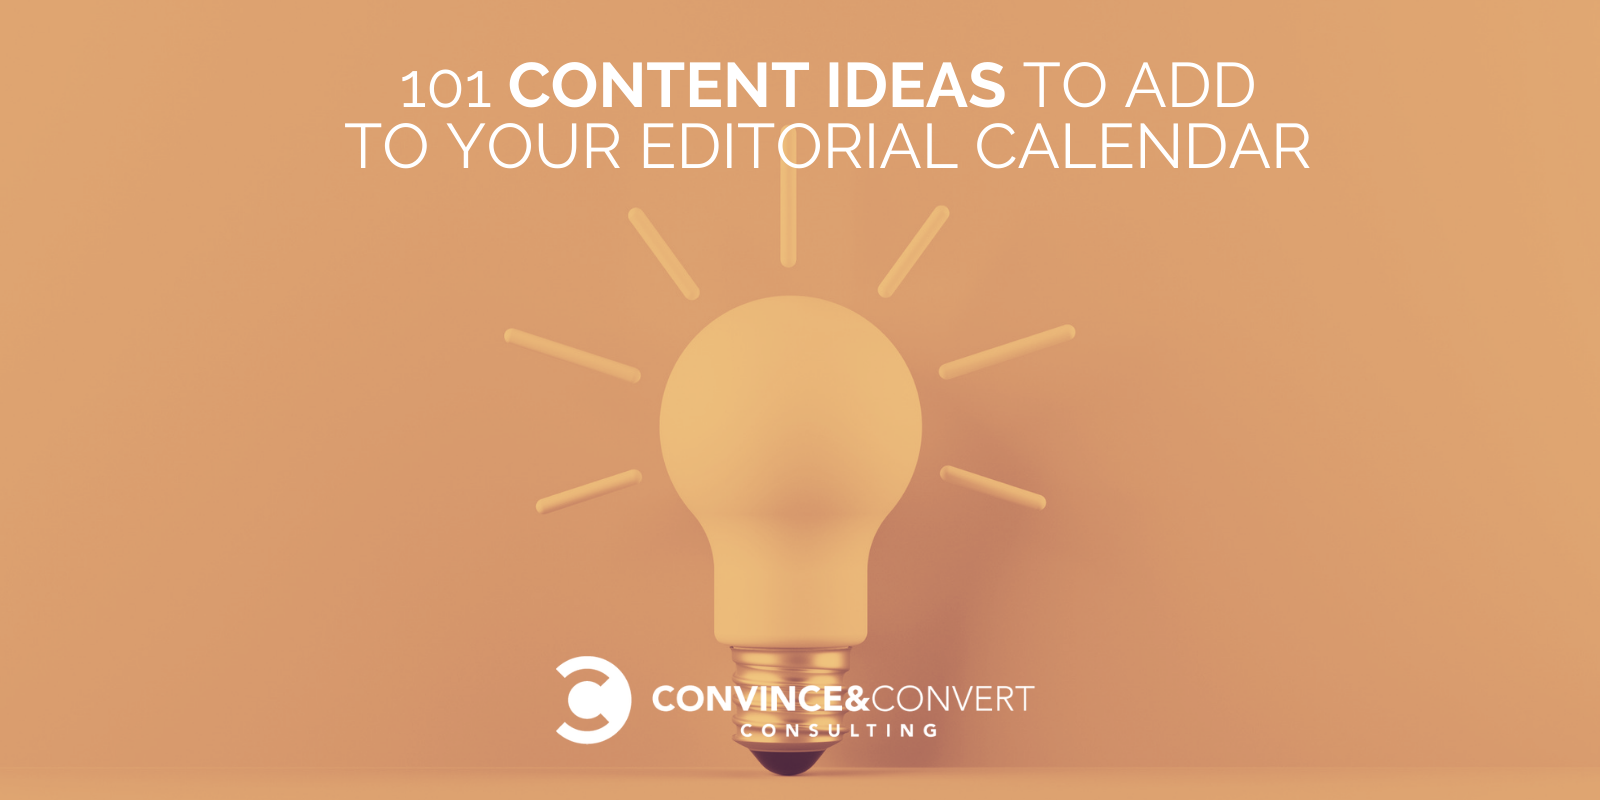 101 Content Ideas to Add to Your Editorial Calendar